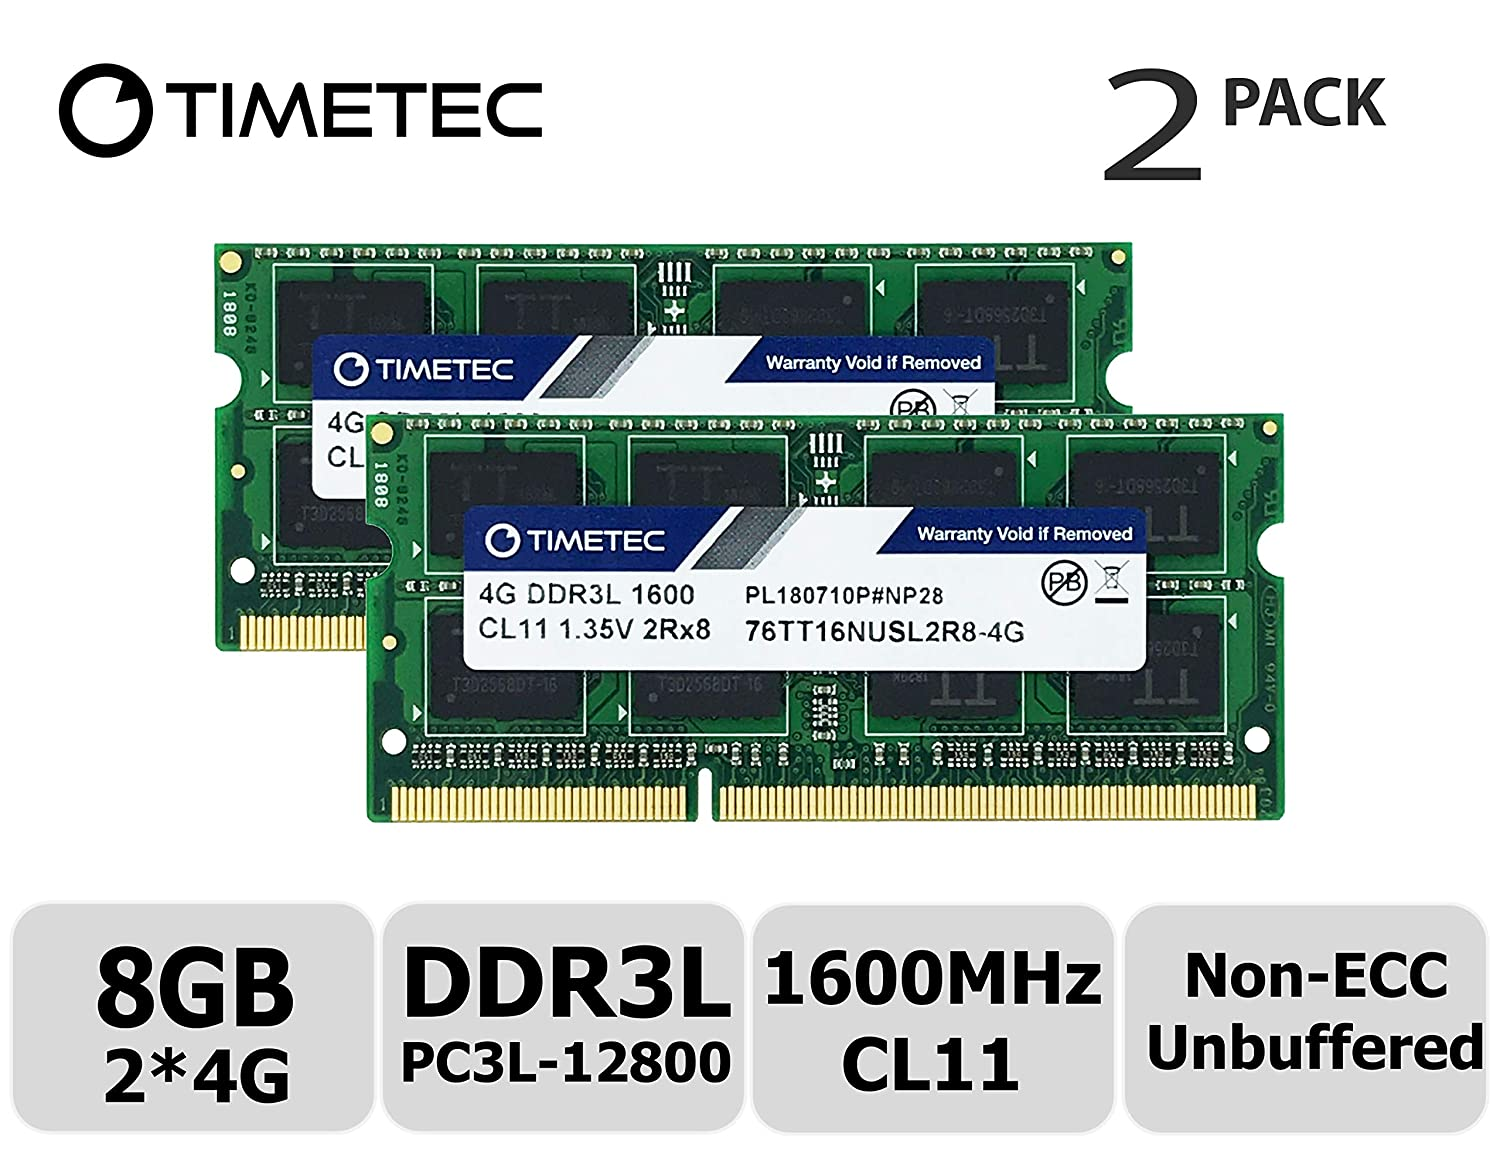 Timetec Hynix Ic 8gb Kit2x4gb Ddr3l 1600mhz Pc3l 12800 Non Ecc Ram V Gen Ddr3 4gb Pc 10600 Memory Sodimm Notebook Laptop Unbuffered 135v Cl11 2rx8 Dual Rank 204 Pin Computer